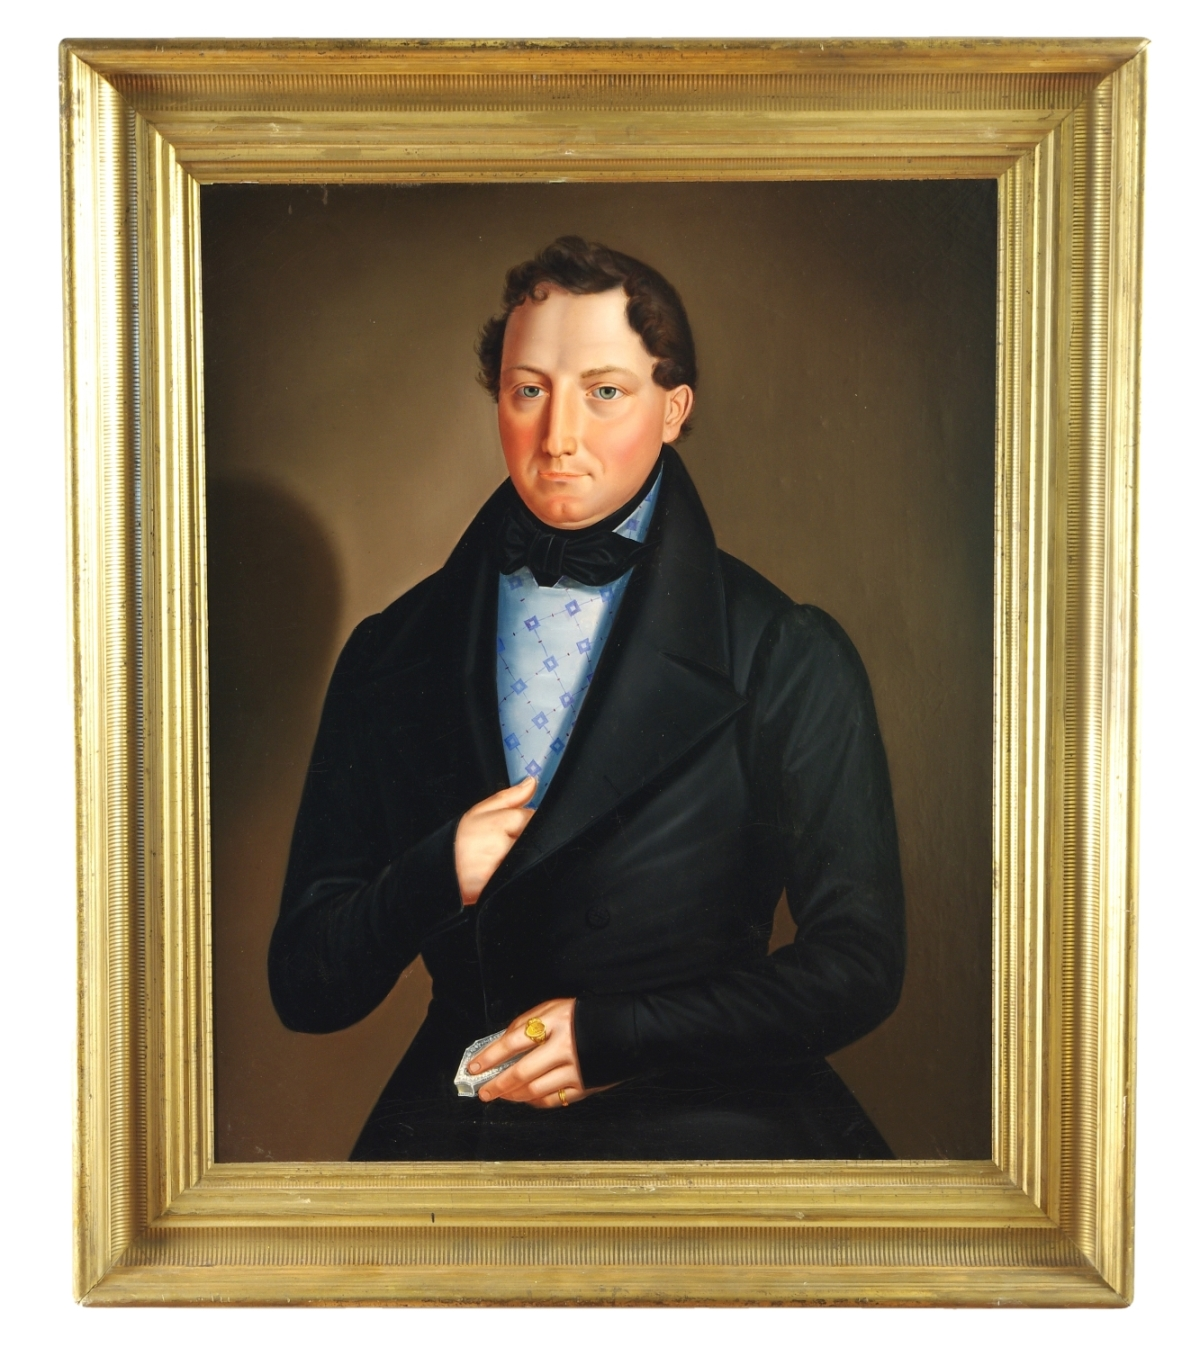 View 2: Biedermeier Portrait of a Gentleman, c. 1820